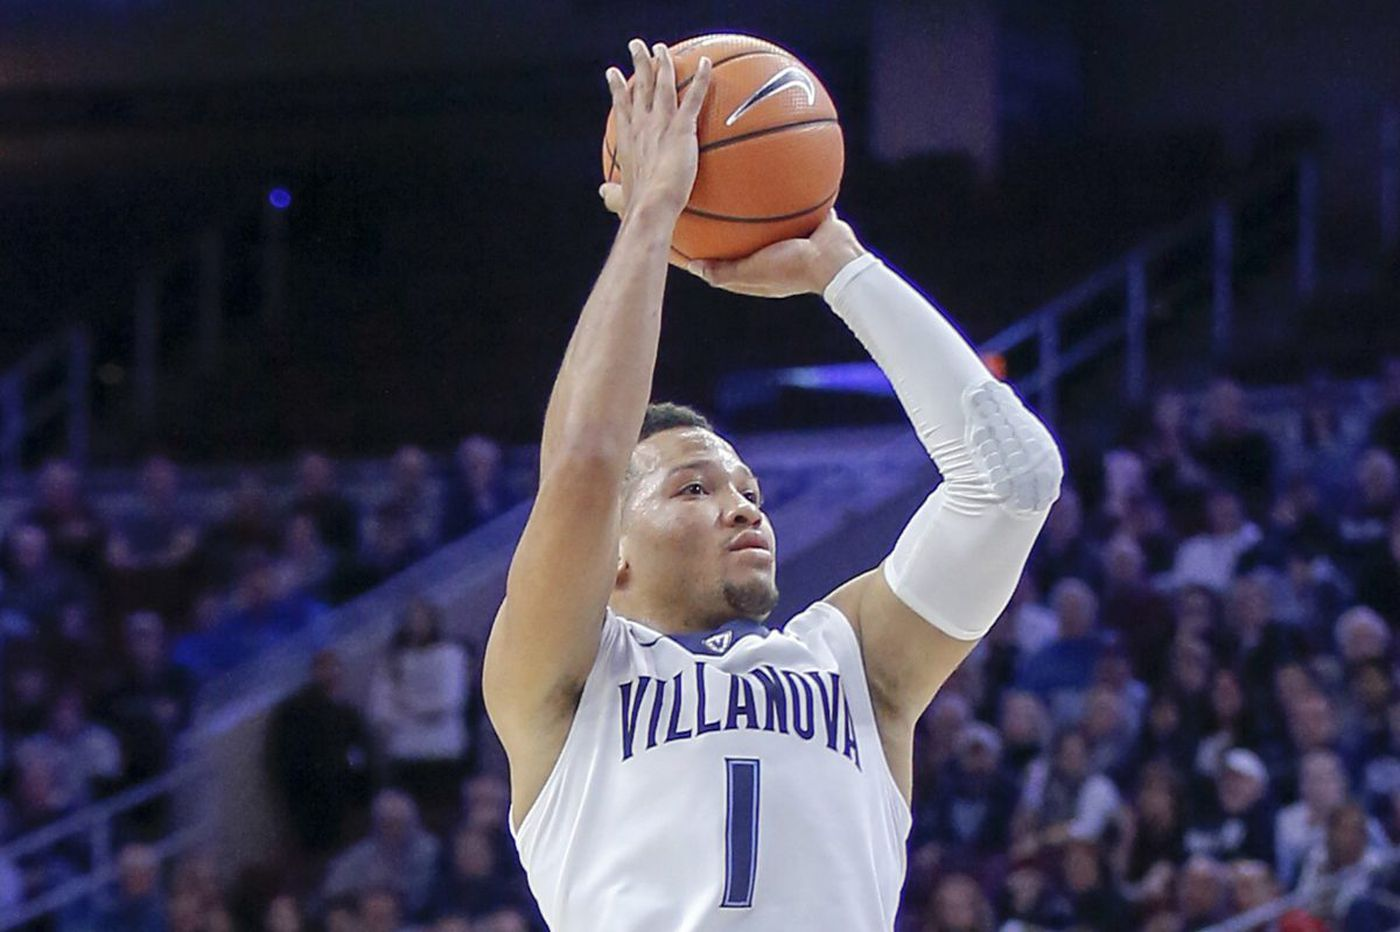 Villanova and the Big East are in transition - literally | Bob Ford